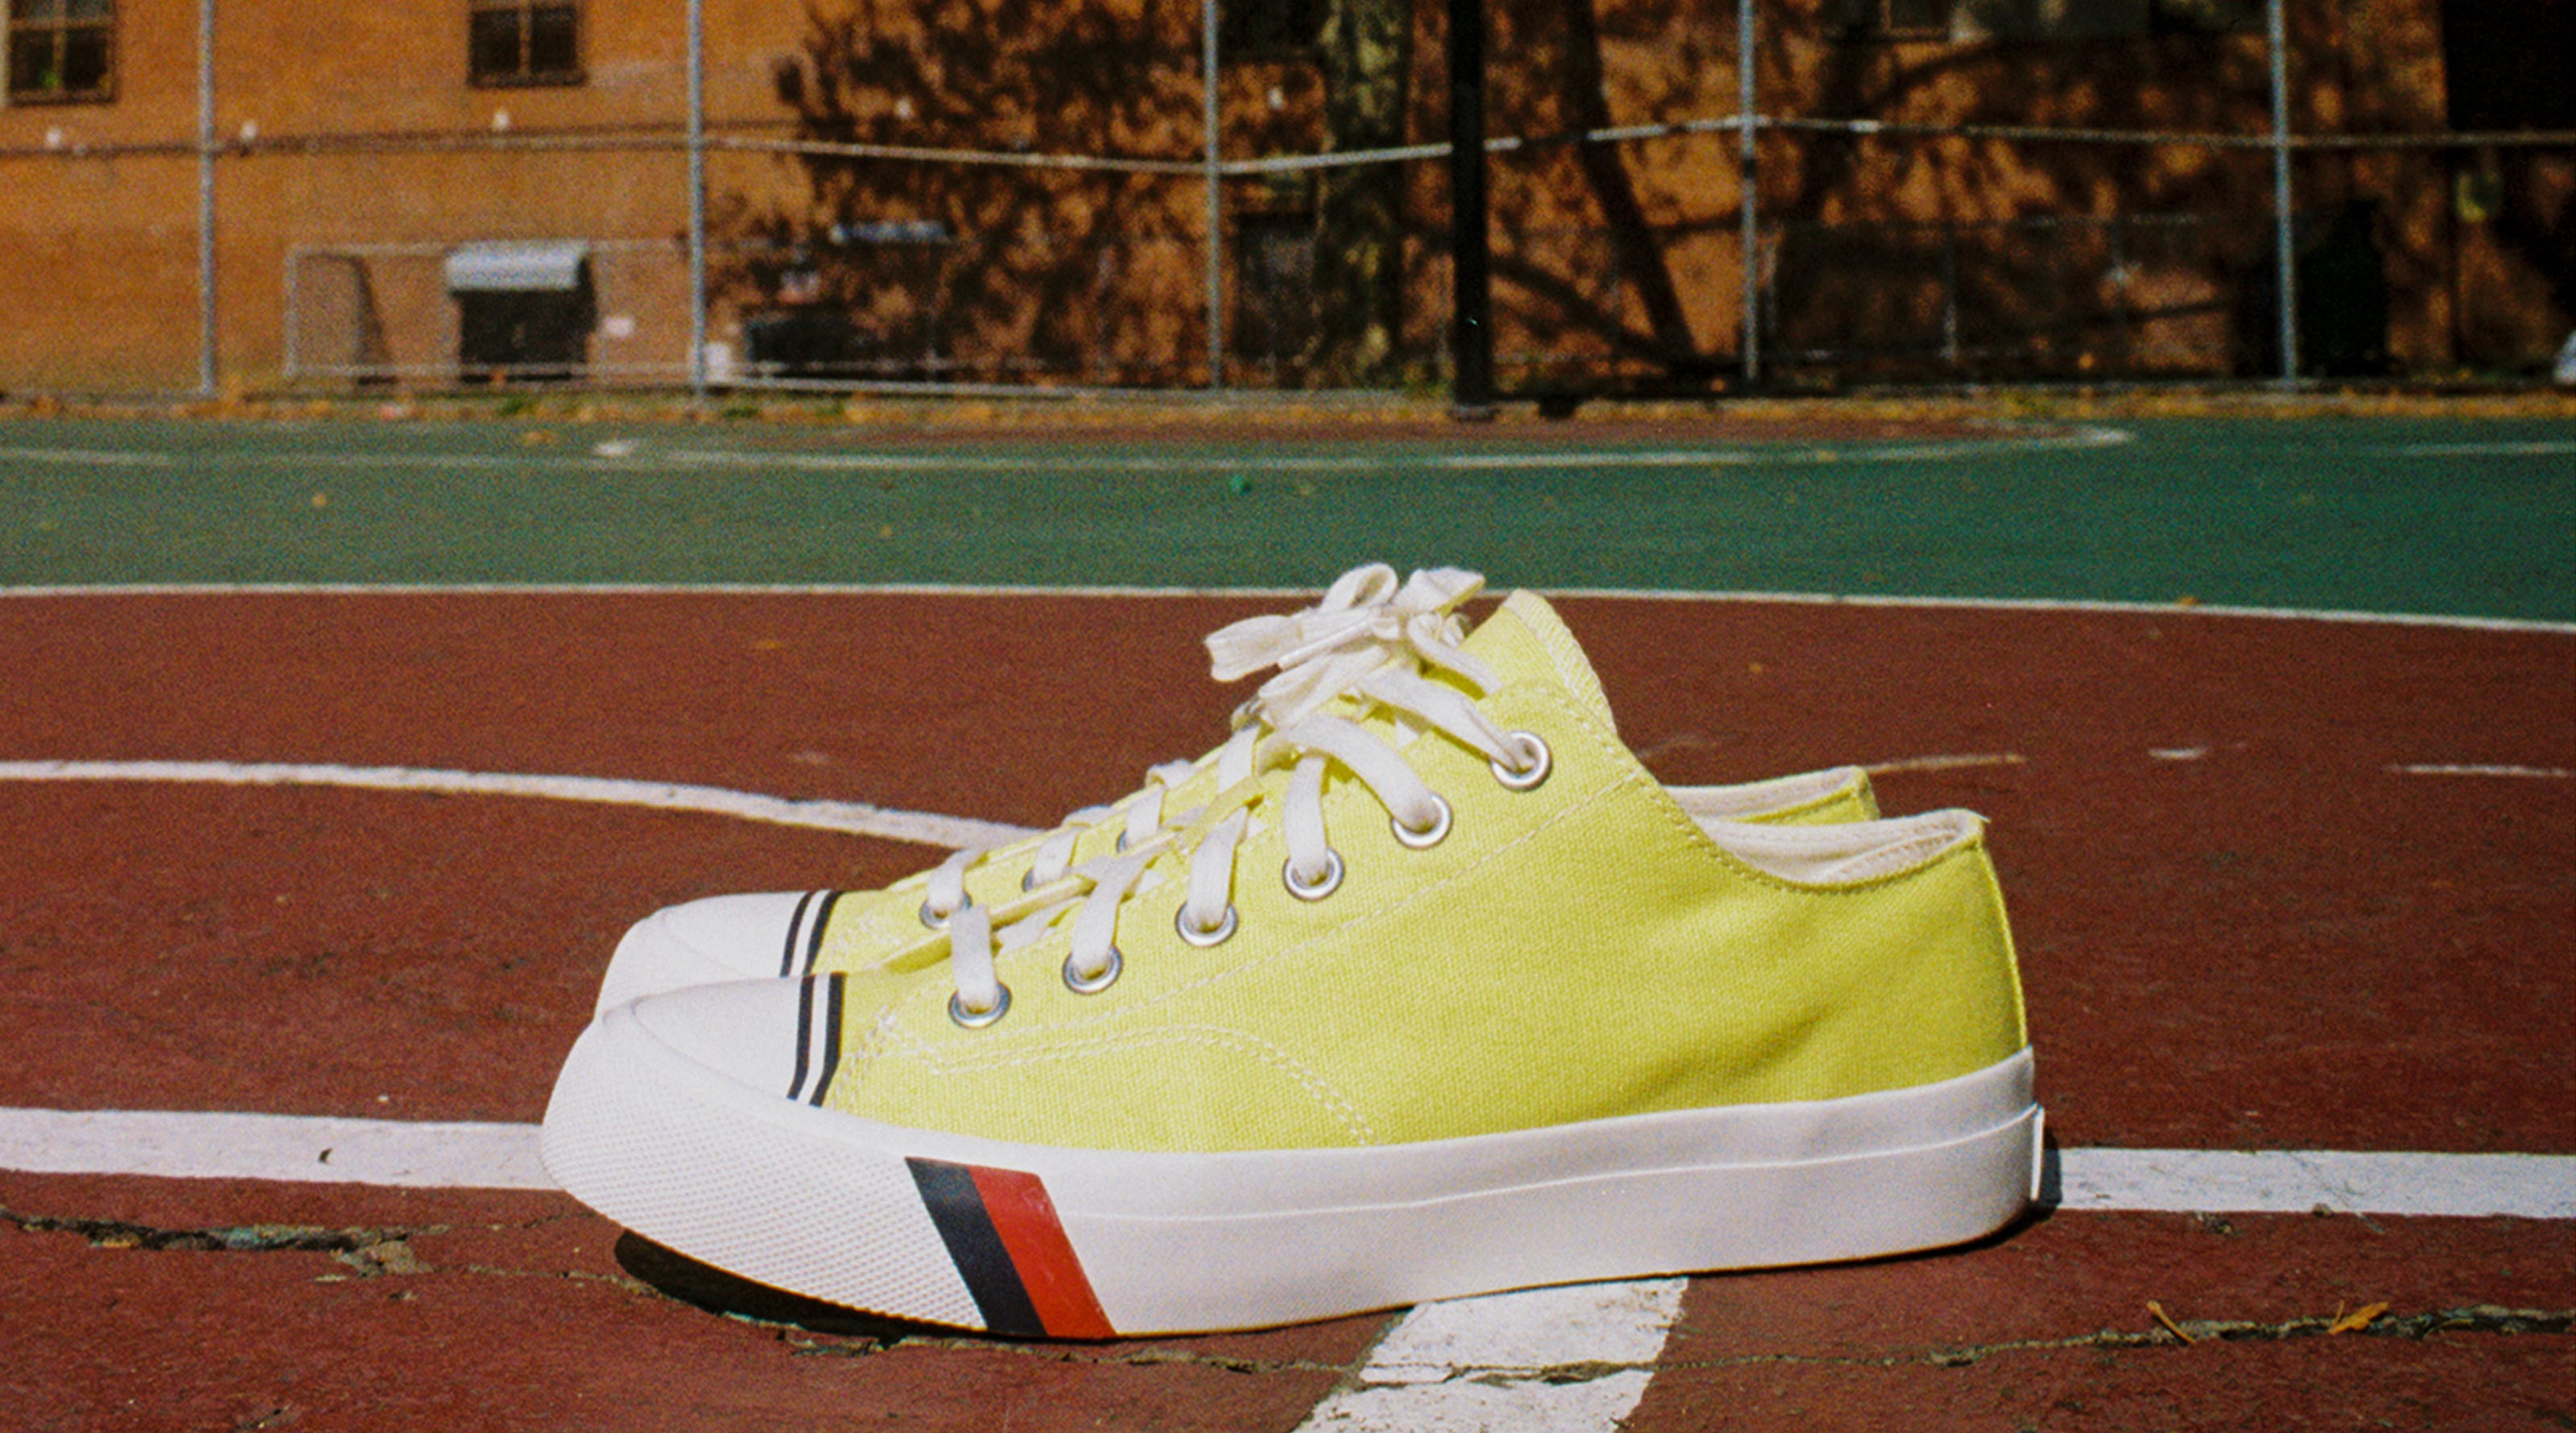 Pair of Pro-Keds Royal Lo's in yellow on a city basketball court.